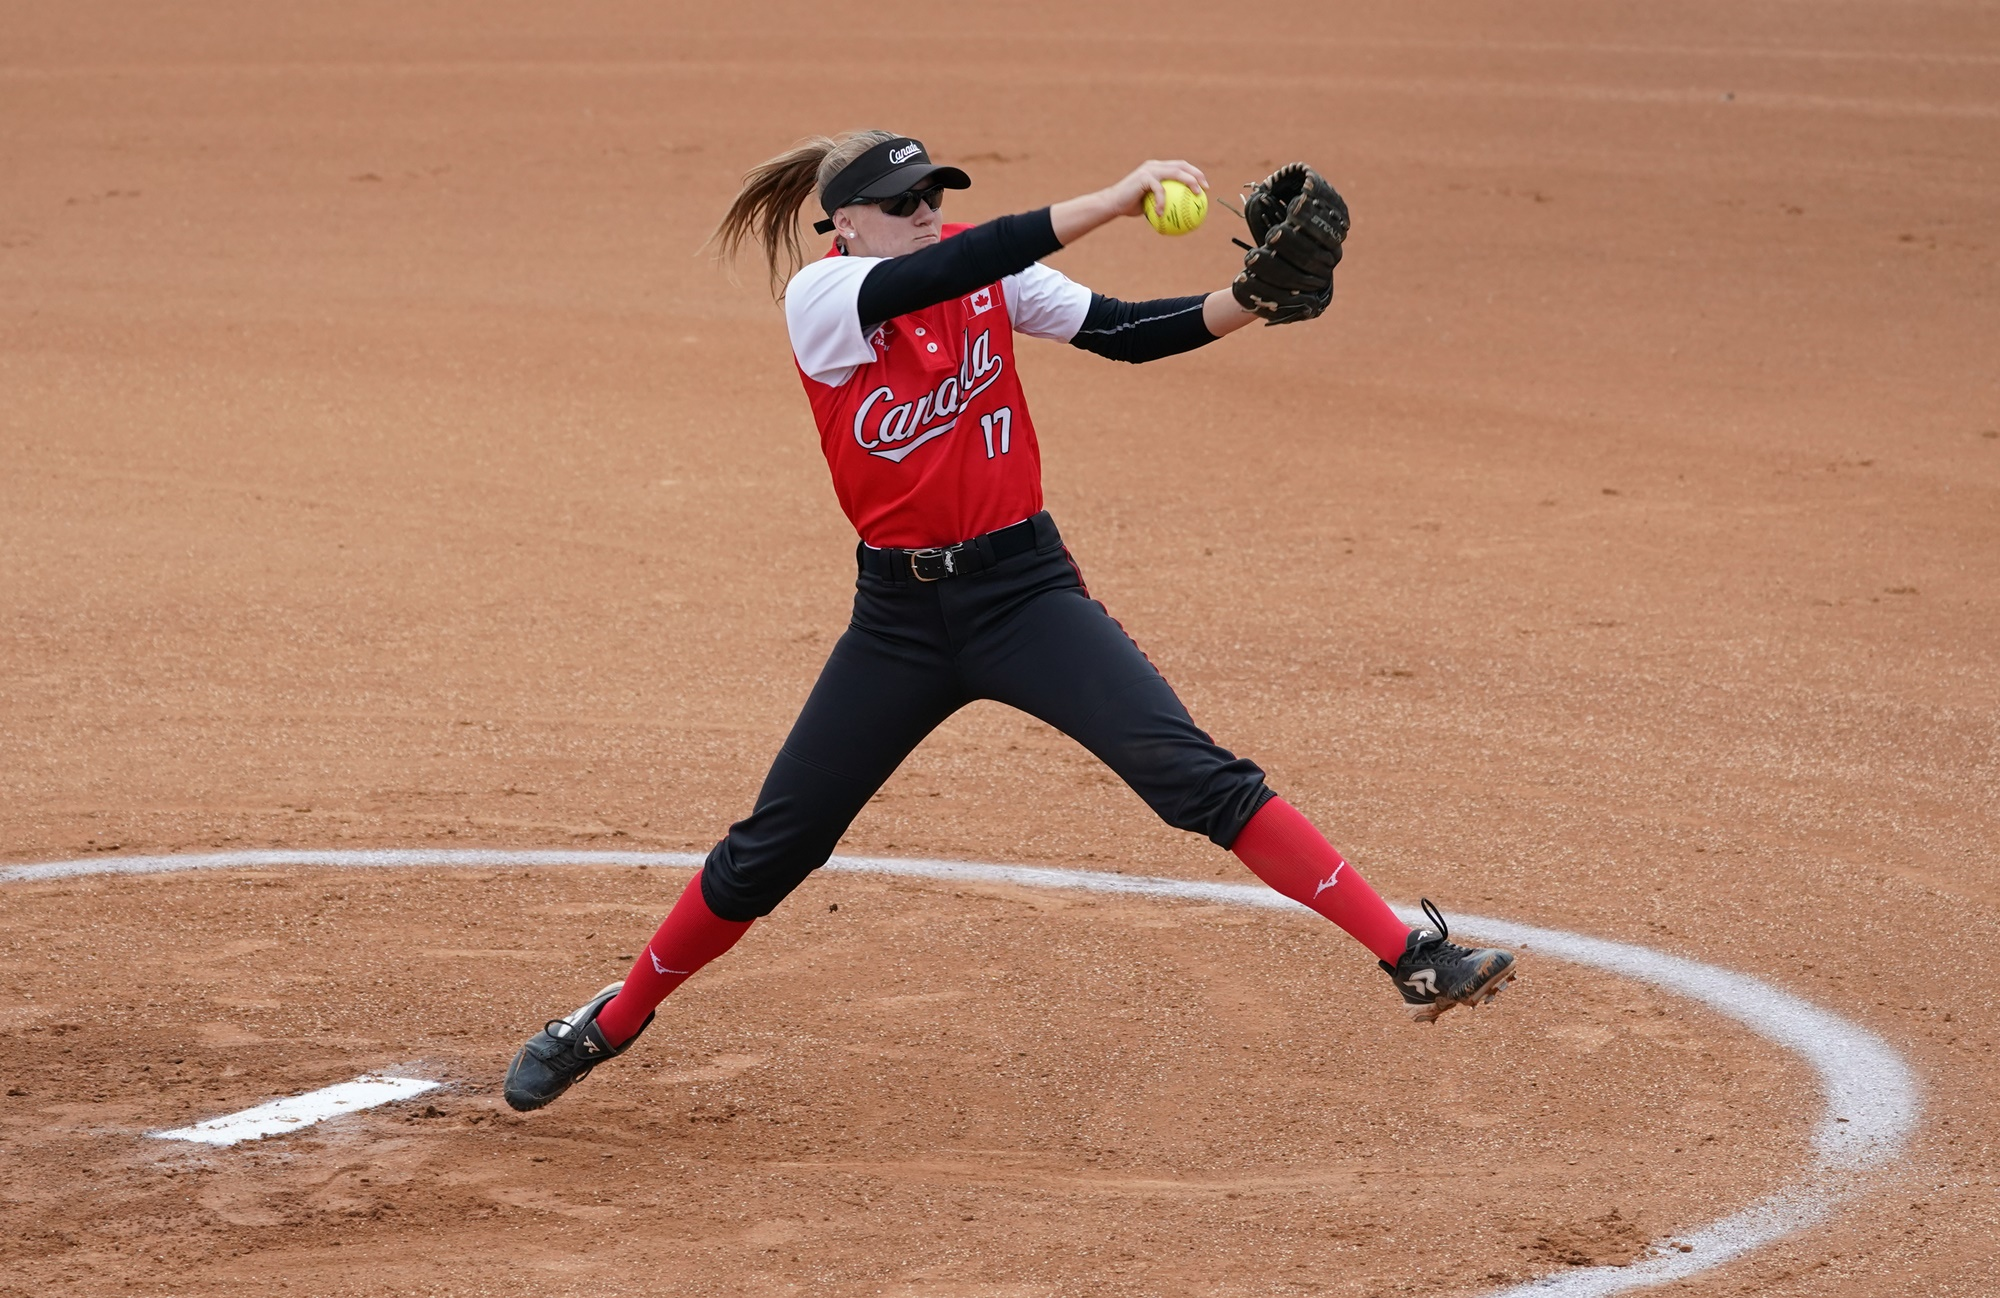 Samantha Ryan went the distance for Canada